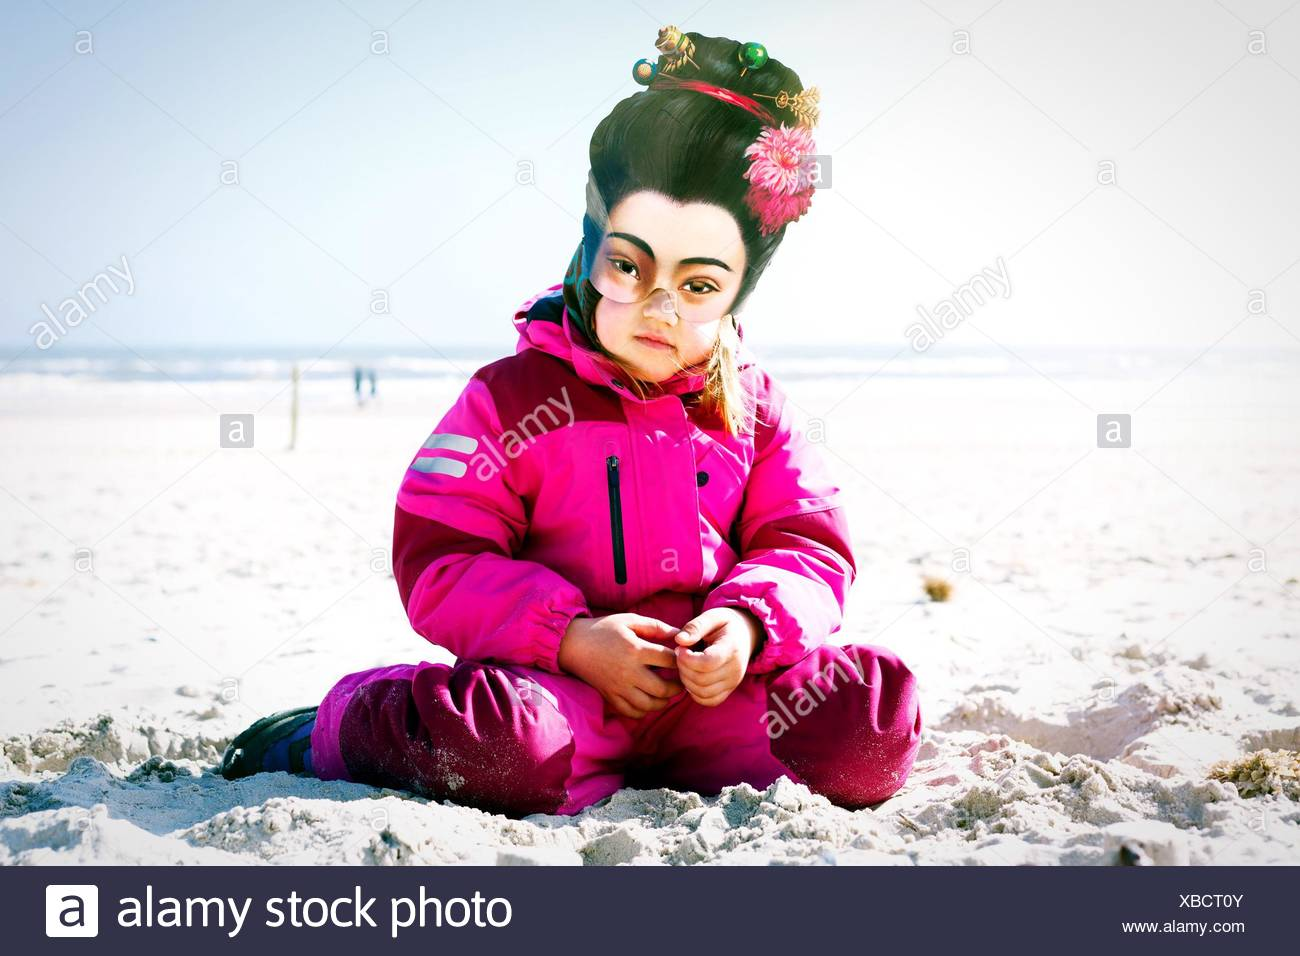 Child Wearing Mask On Sandy Beach - Stock Image